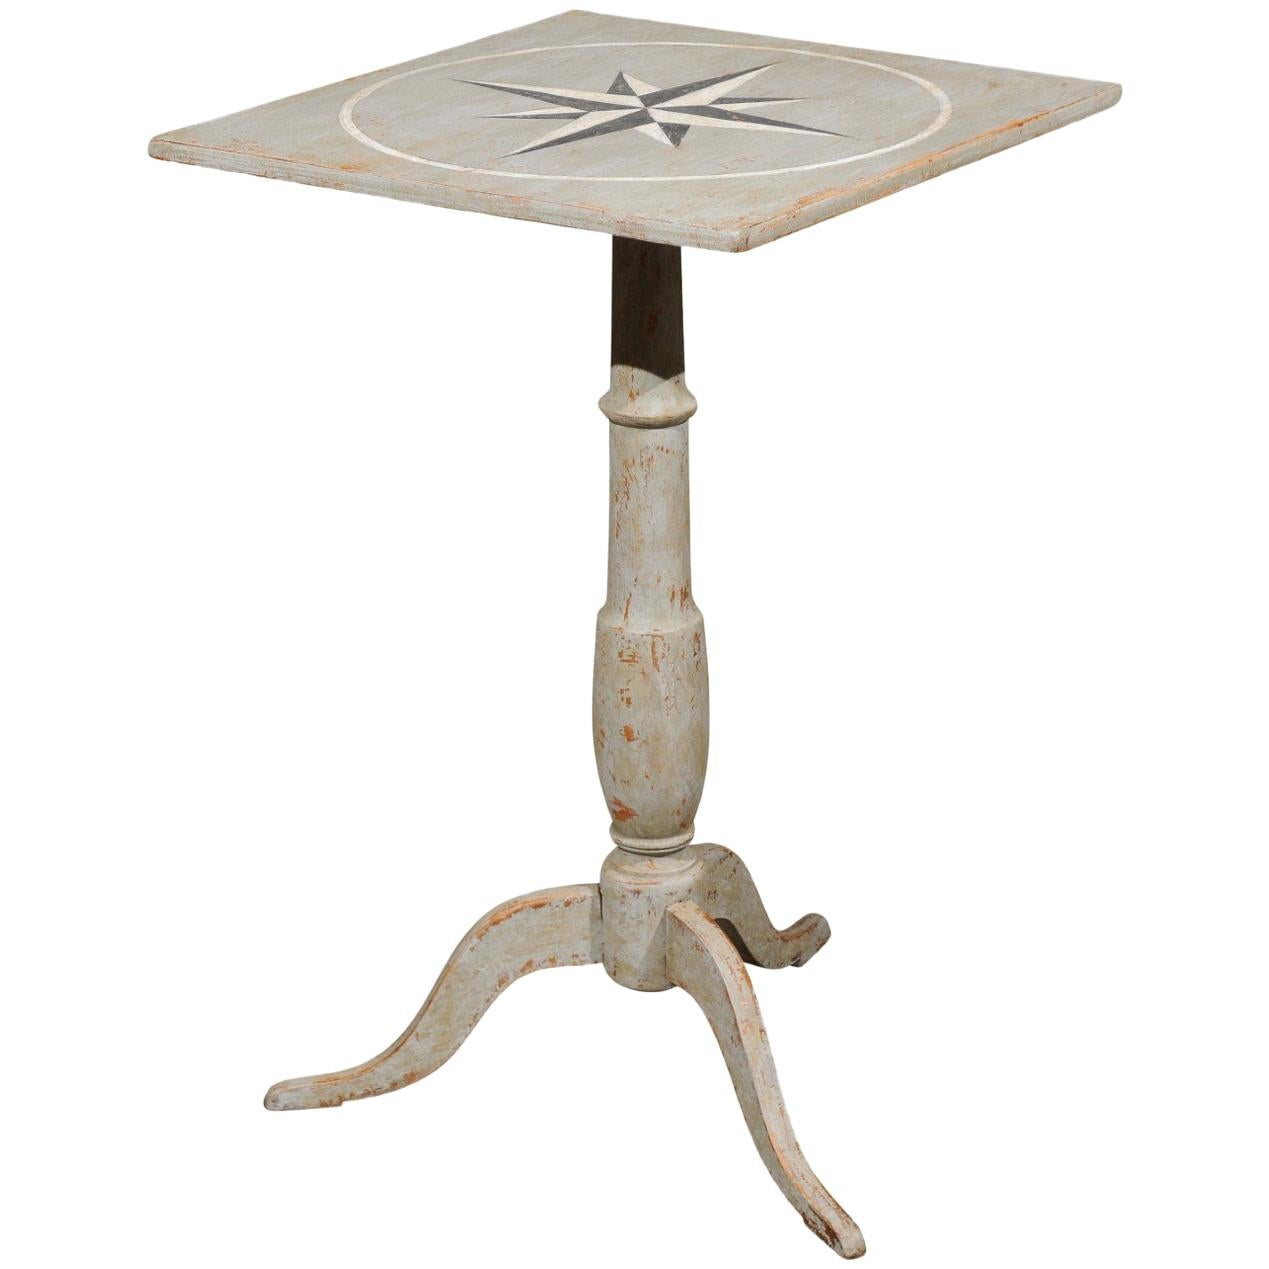 Swedish 1850s Grey Painted Guéridon Pedestal Side Table with Wind Rose Motif